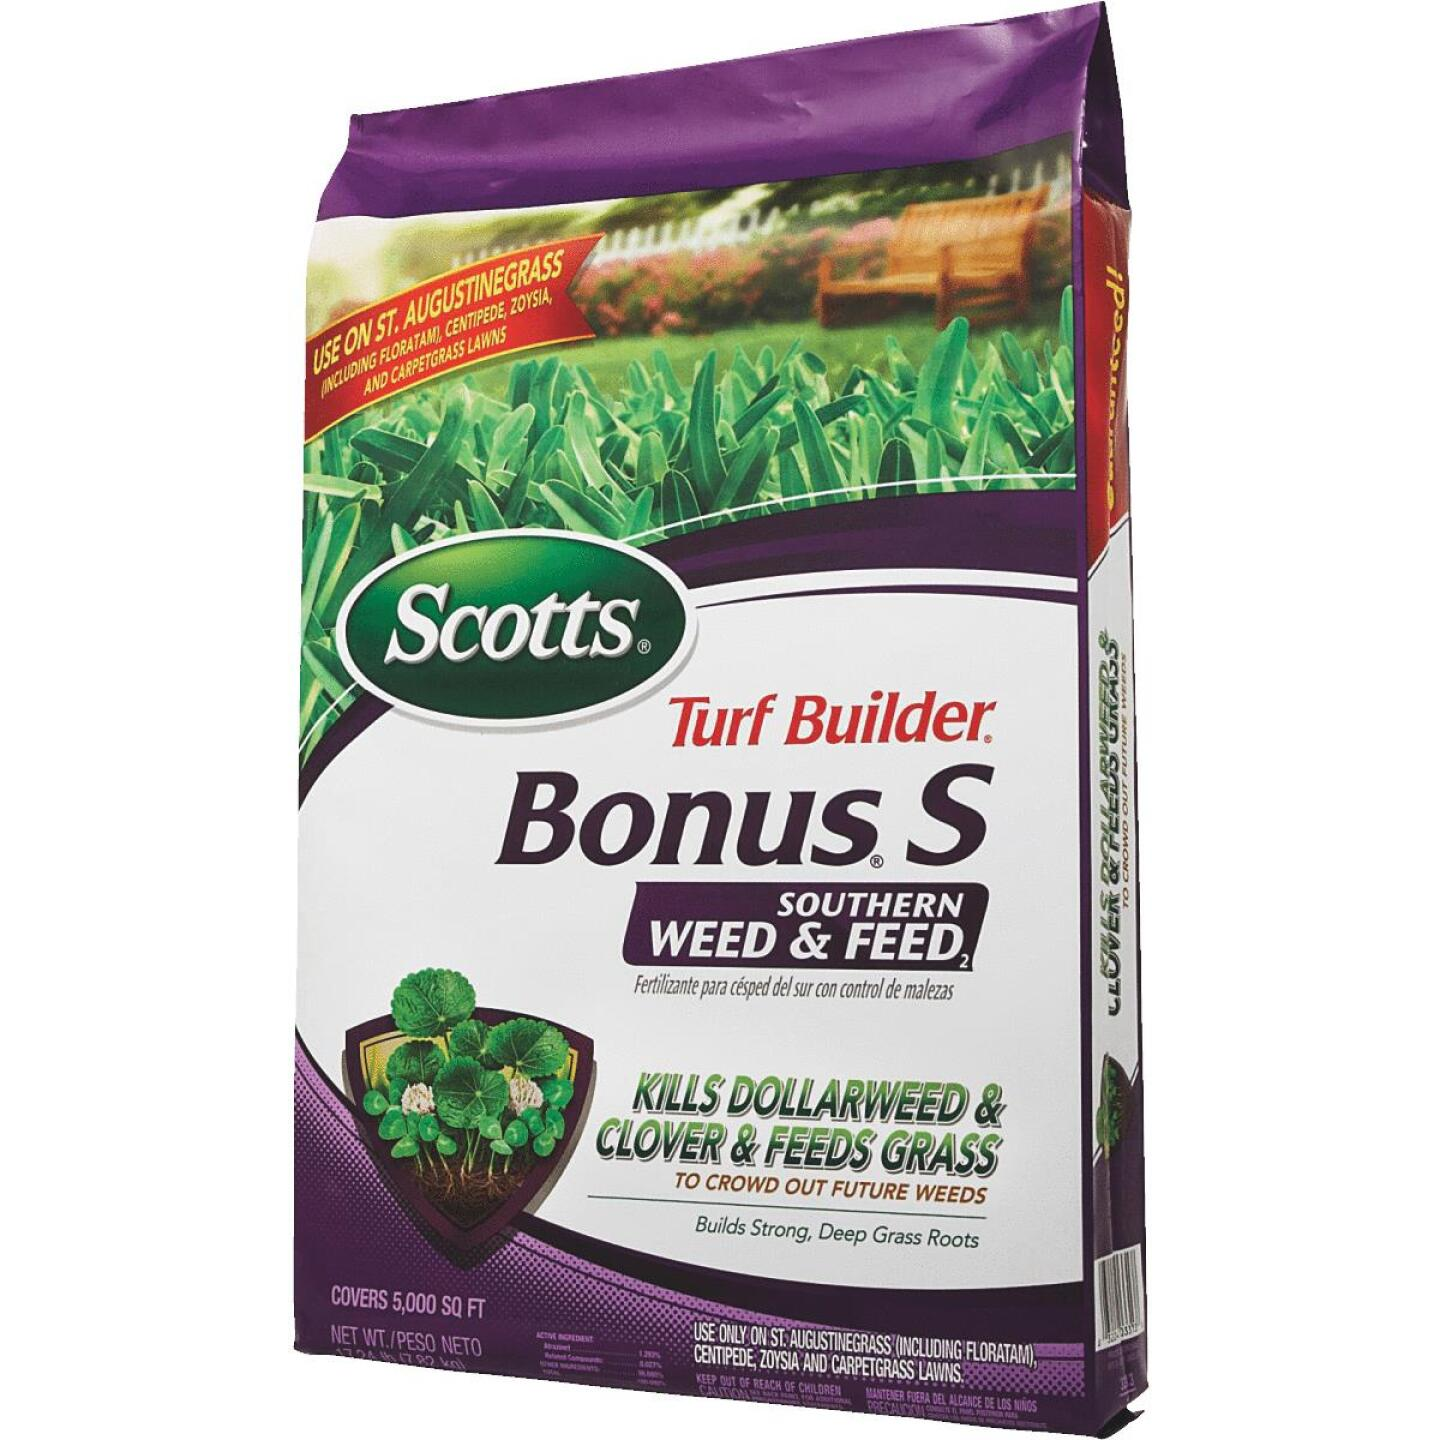 Scotts Turf Builder Bonus S Southern Weed & Feed 18.62 Lb. 5000 Sq. Ft. 29-0-10 Lawn Fertilizer with Weed Killer Image 6